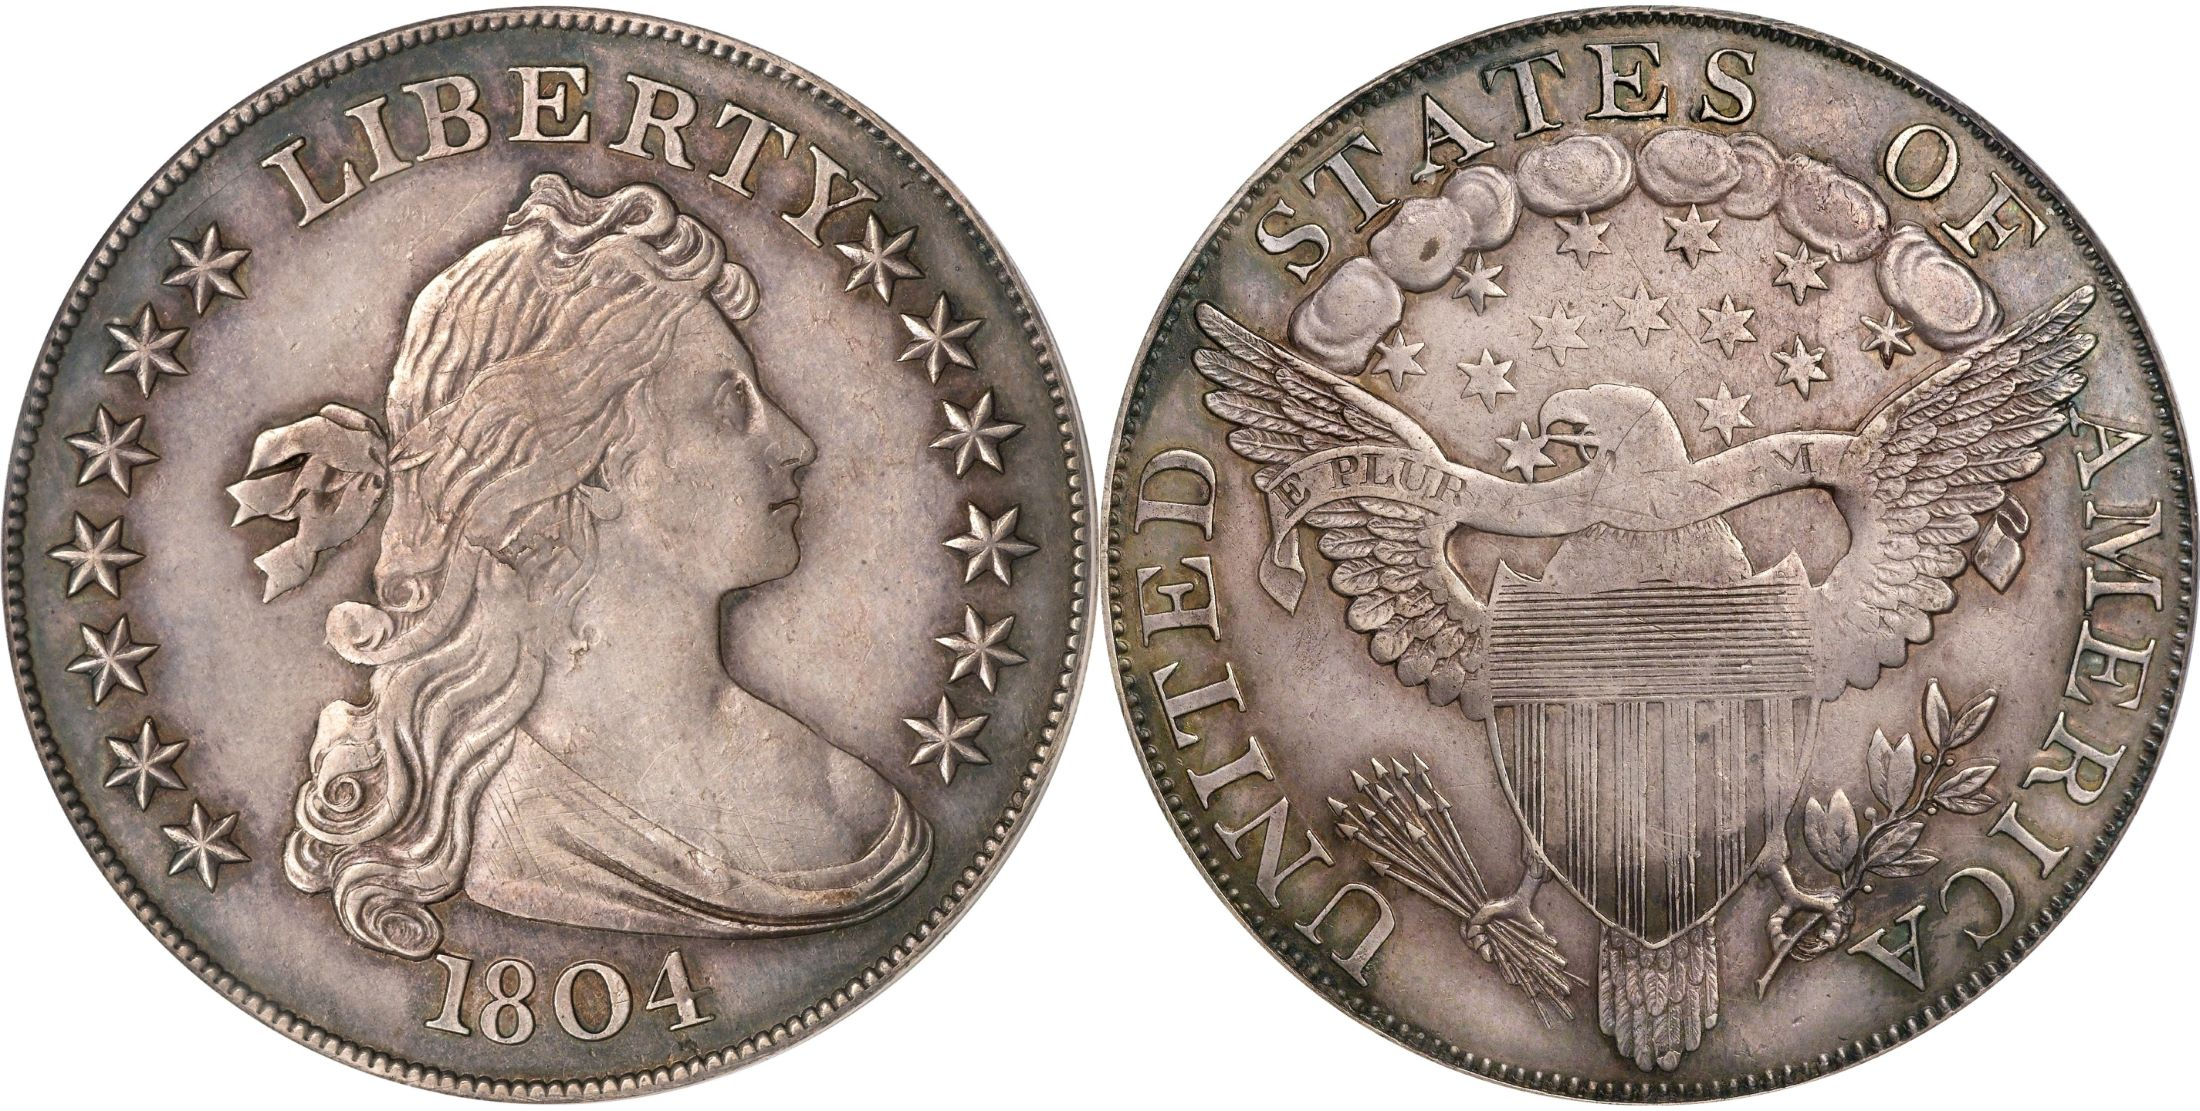 1804 1 Restrike Class Iii Proof Pcgs Coinfacts